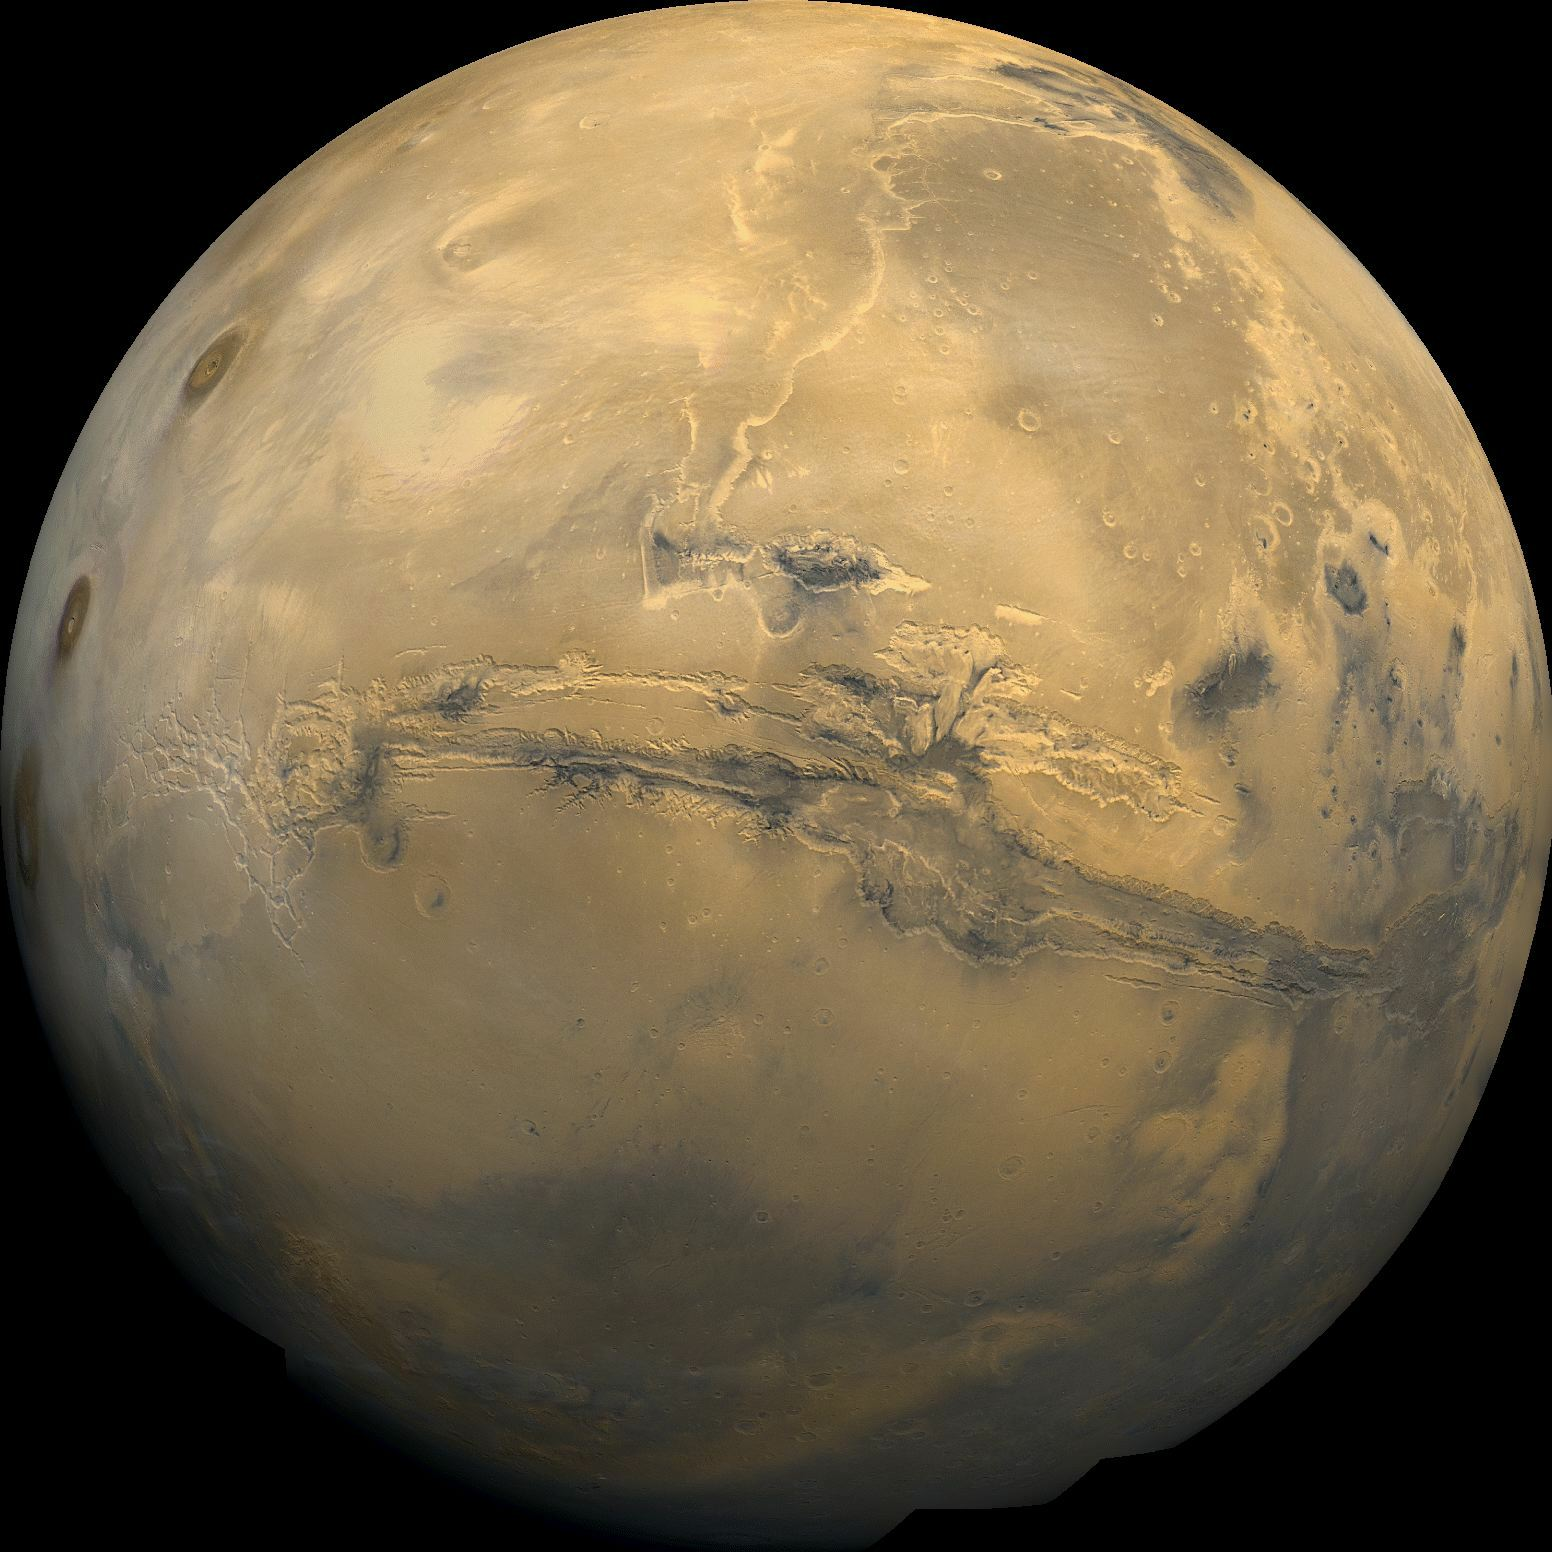 usa today on planet mars - photo #35